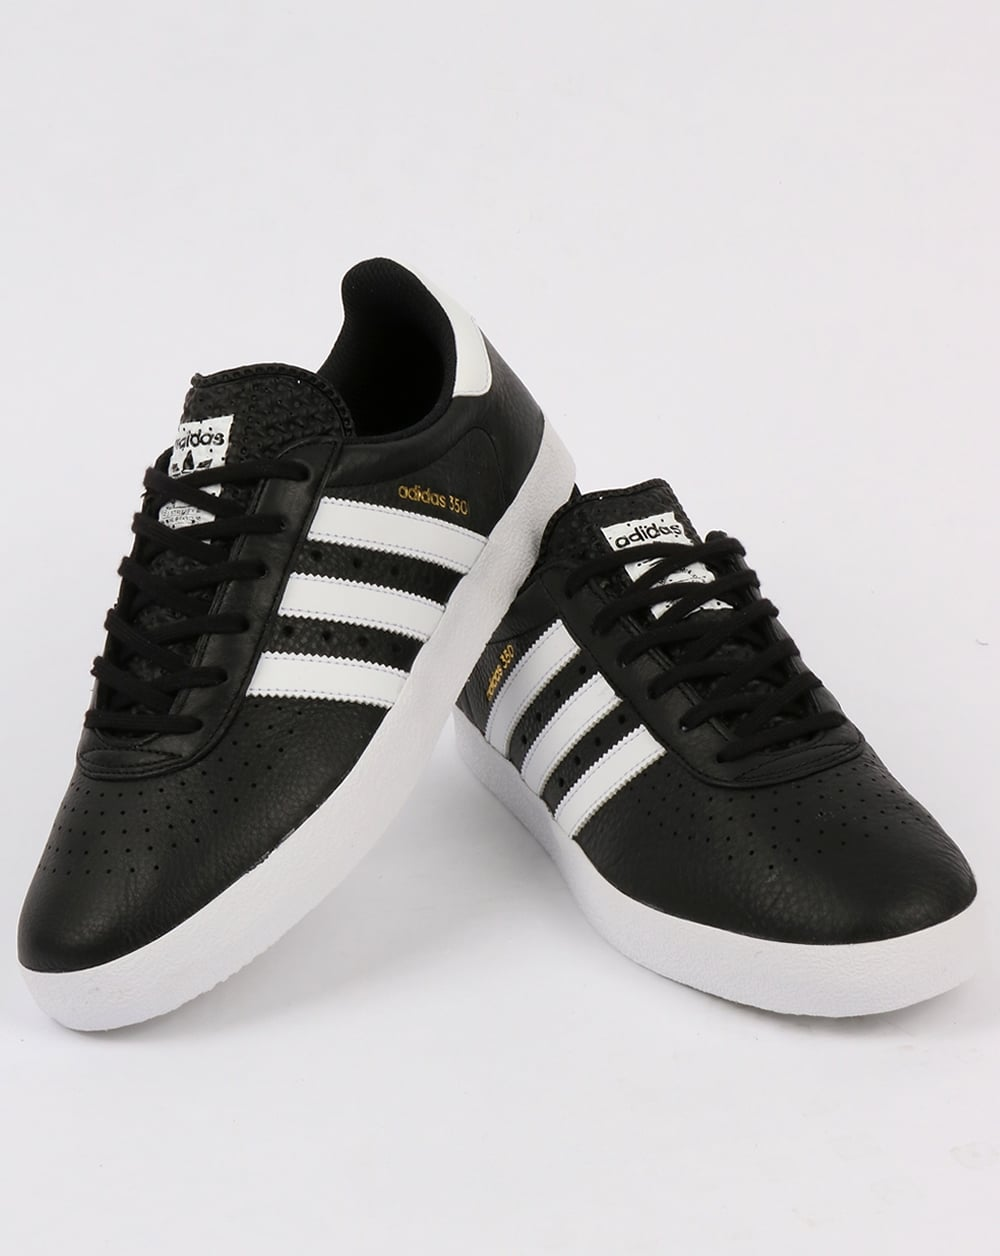 sports shoes f937d 611f4 Adidas 350 Trainers classic BlackWhite